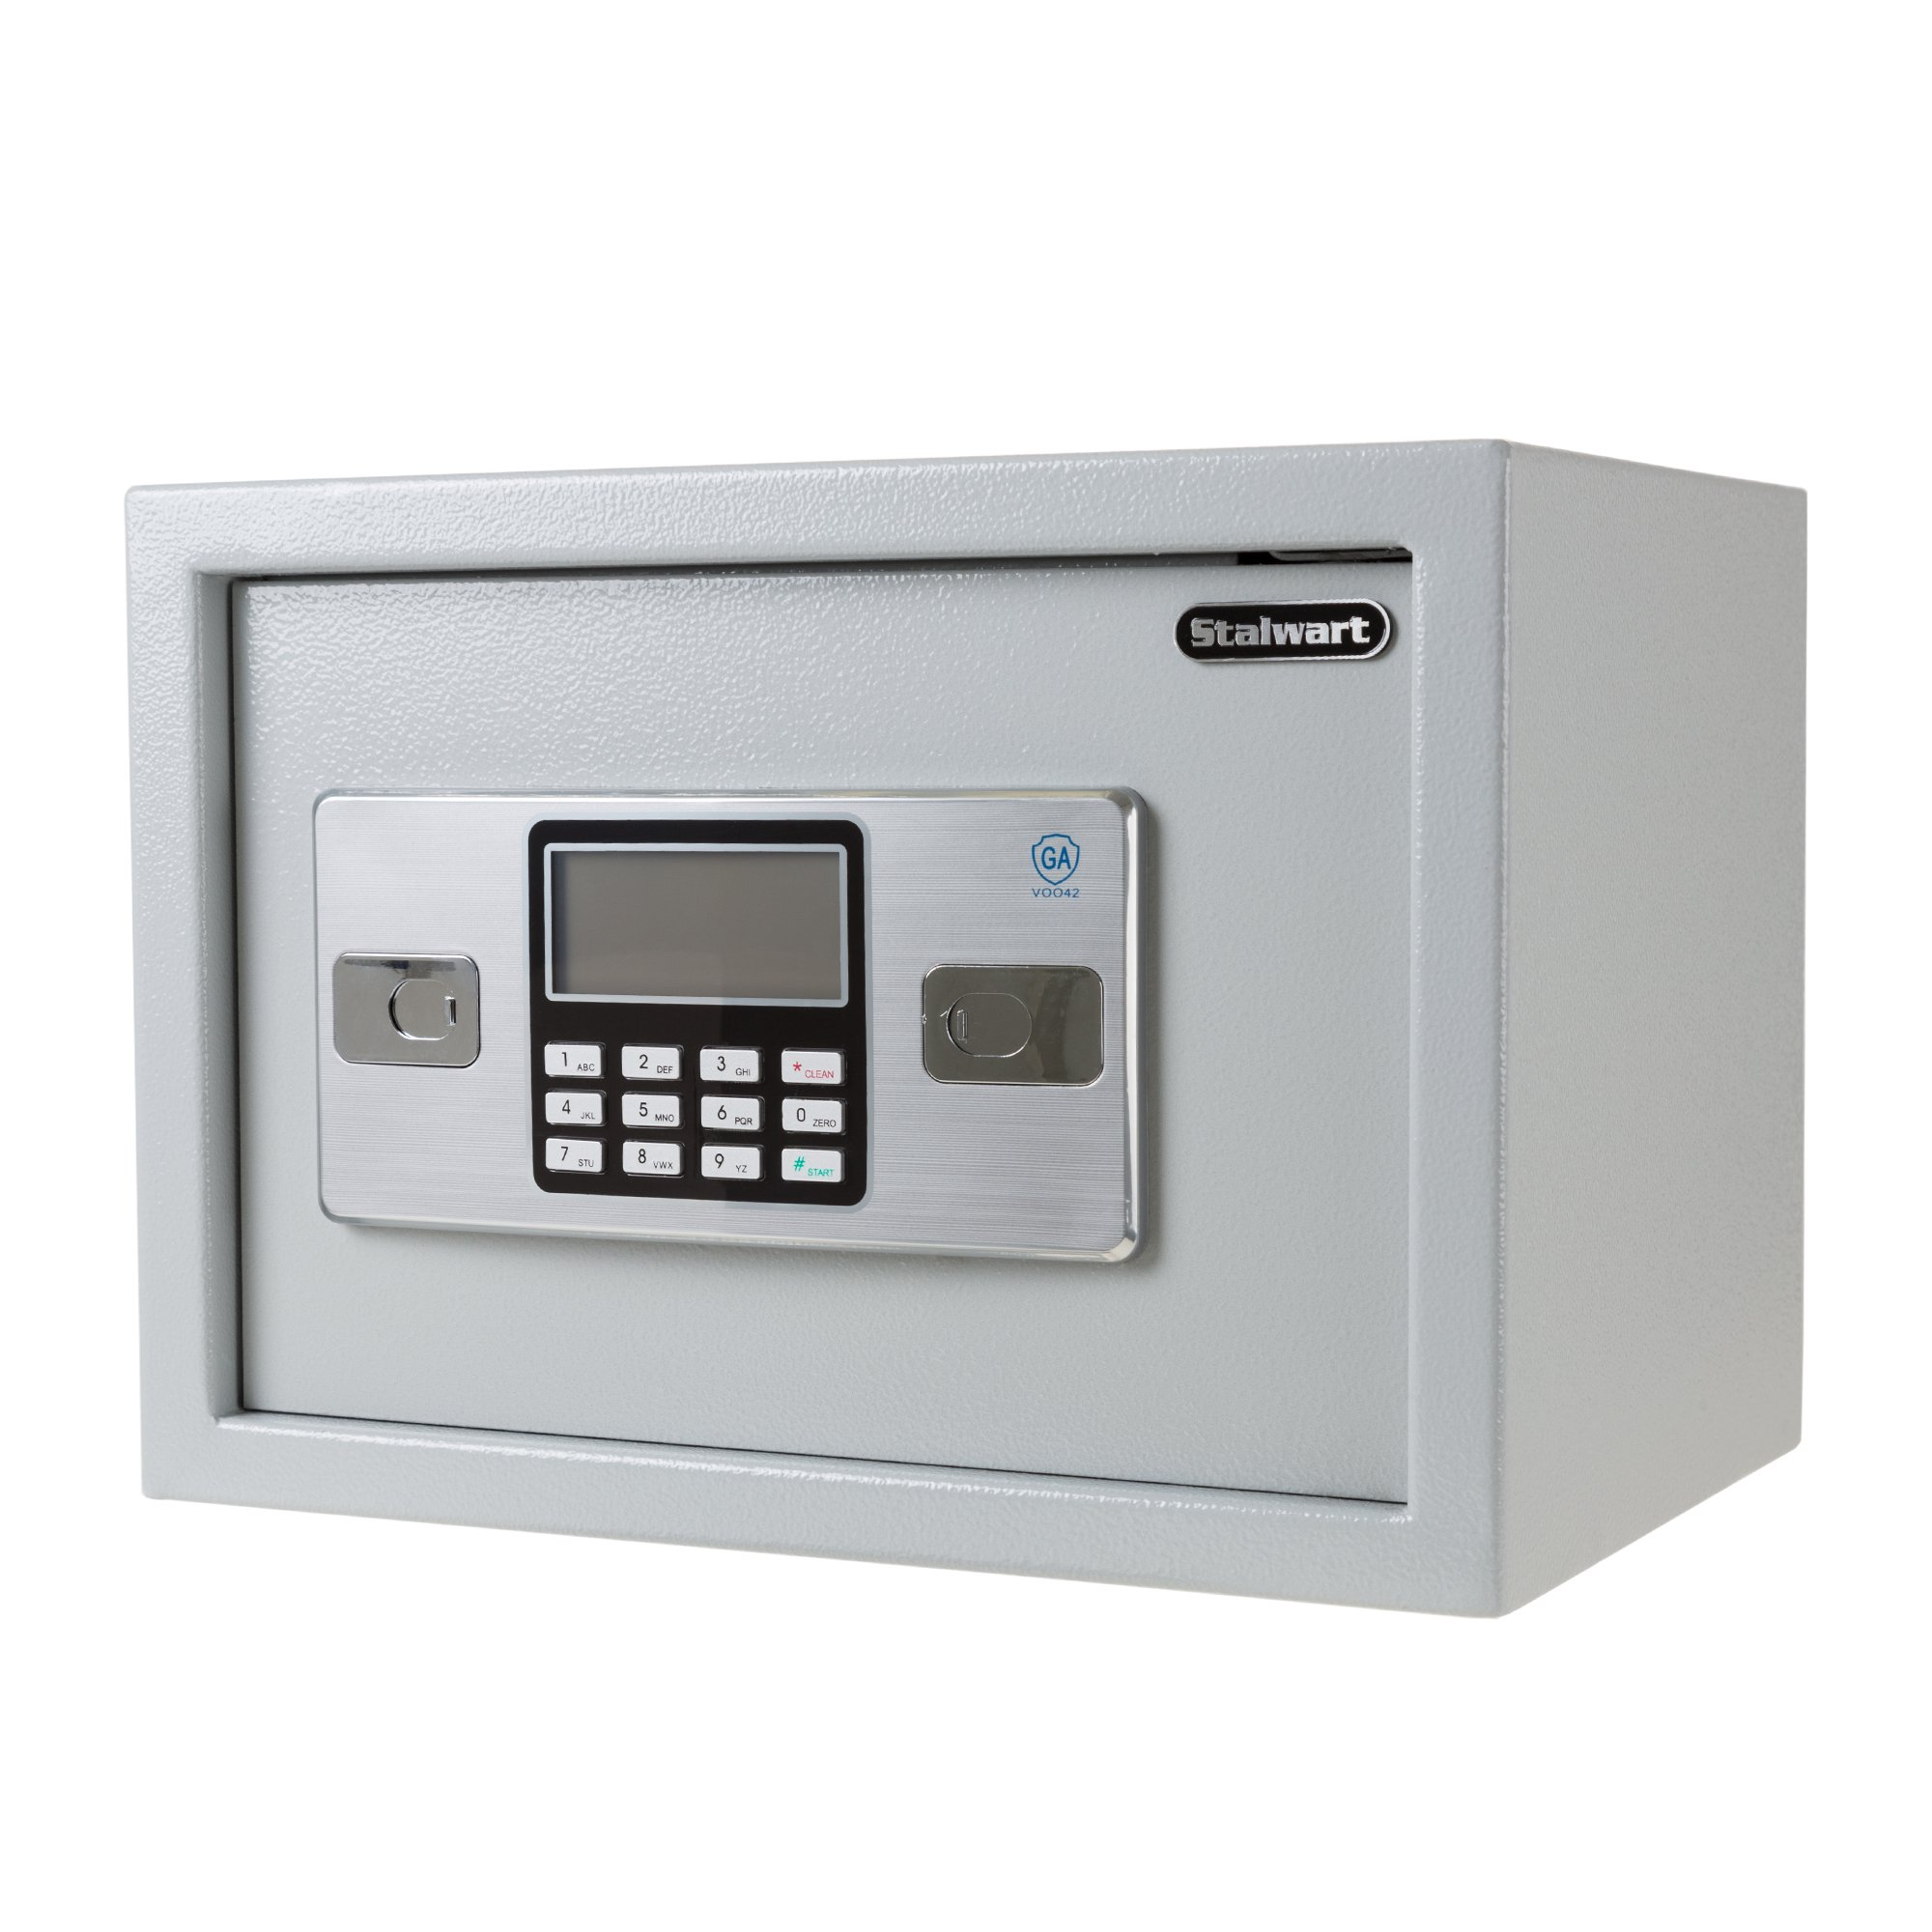 Electronic Digital Keypad Personal Home Safe – Dual Key Entry Wall or Floor Mount for Medicine, Jewelry, Handgun, Cash or Documents